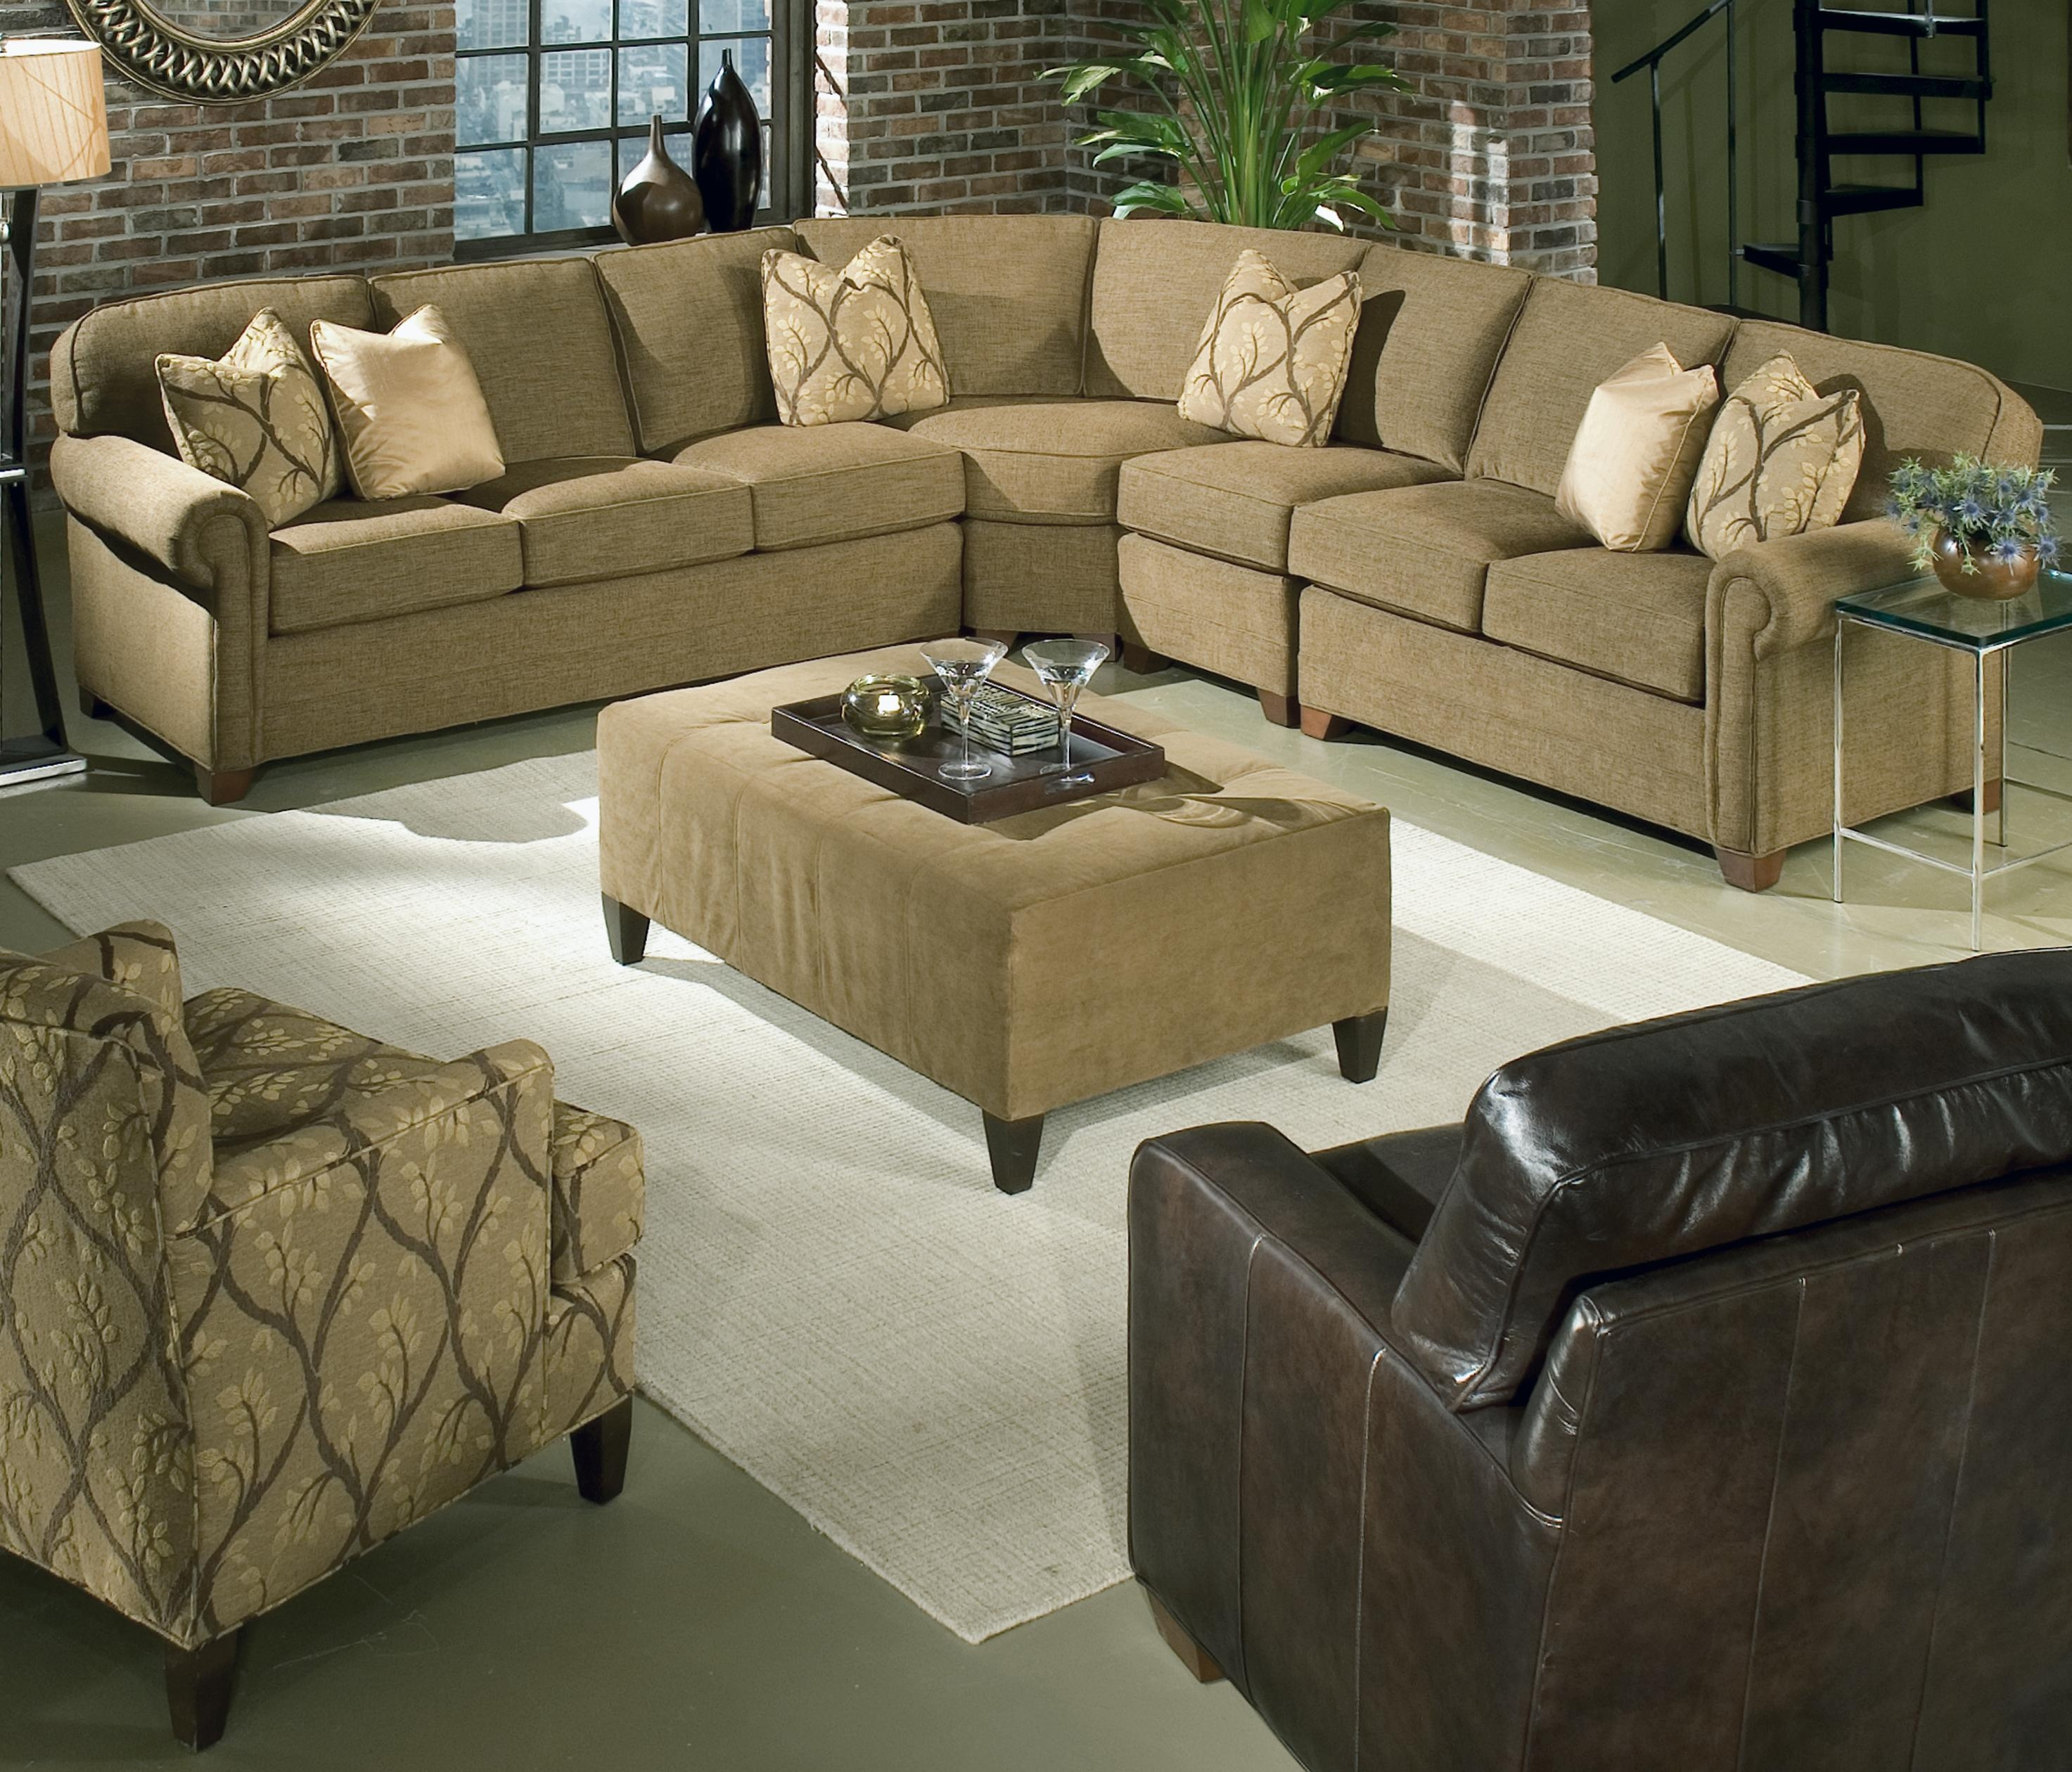 Best Customized Sectional Sofa 83 About Remodel Media Room With Regard To Media Room Sectional (Image 3 of 20)